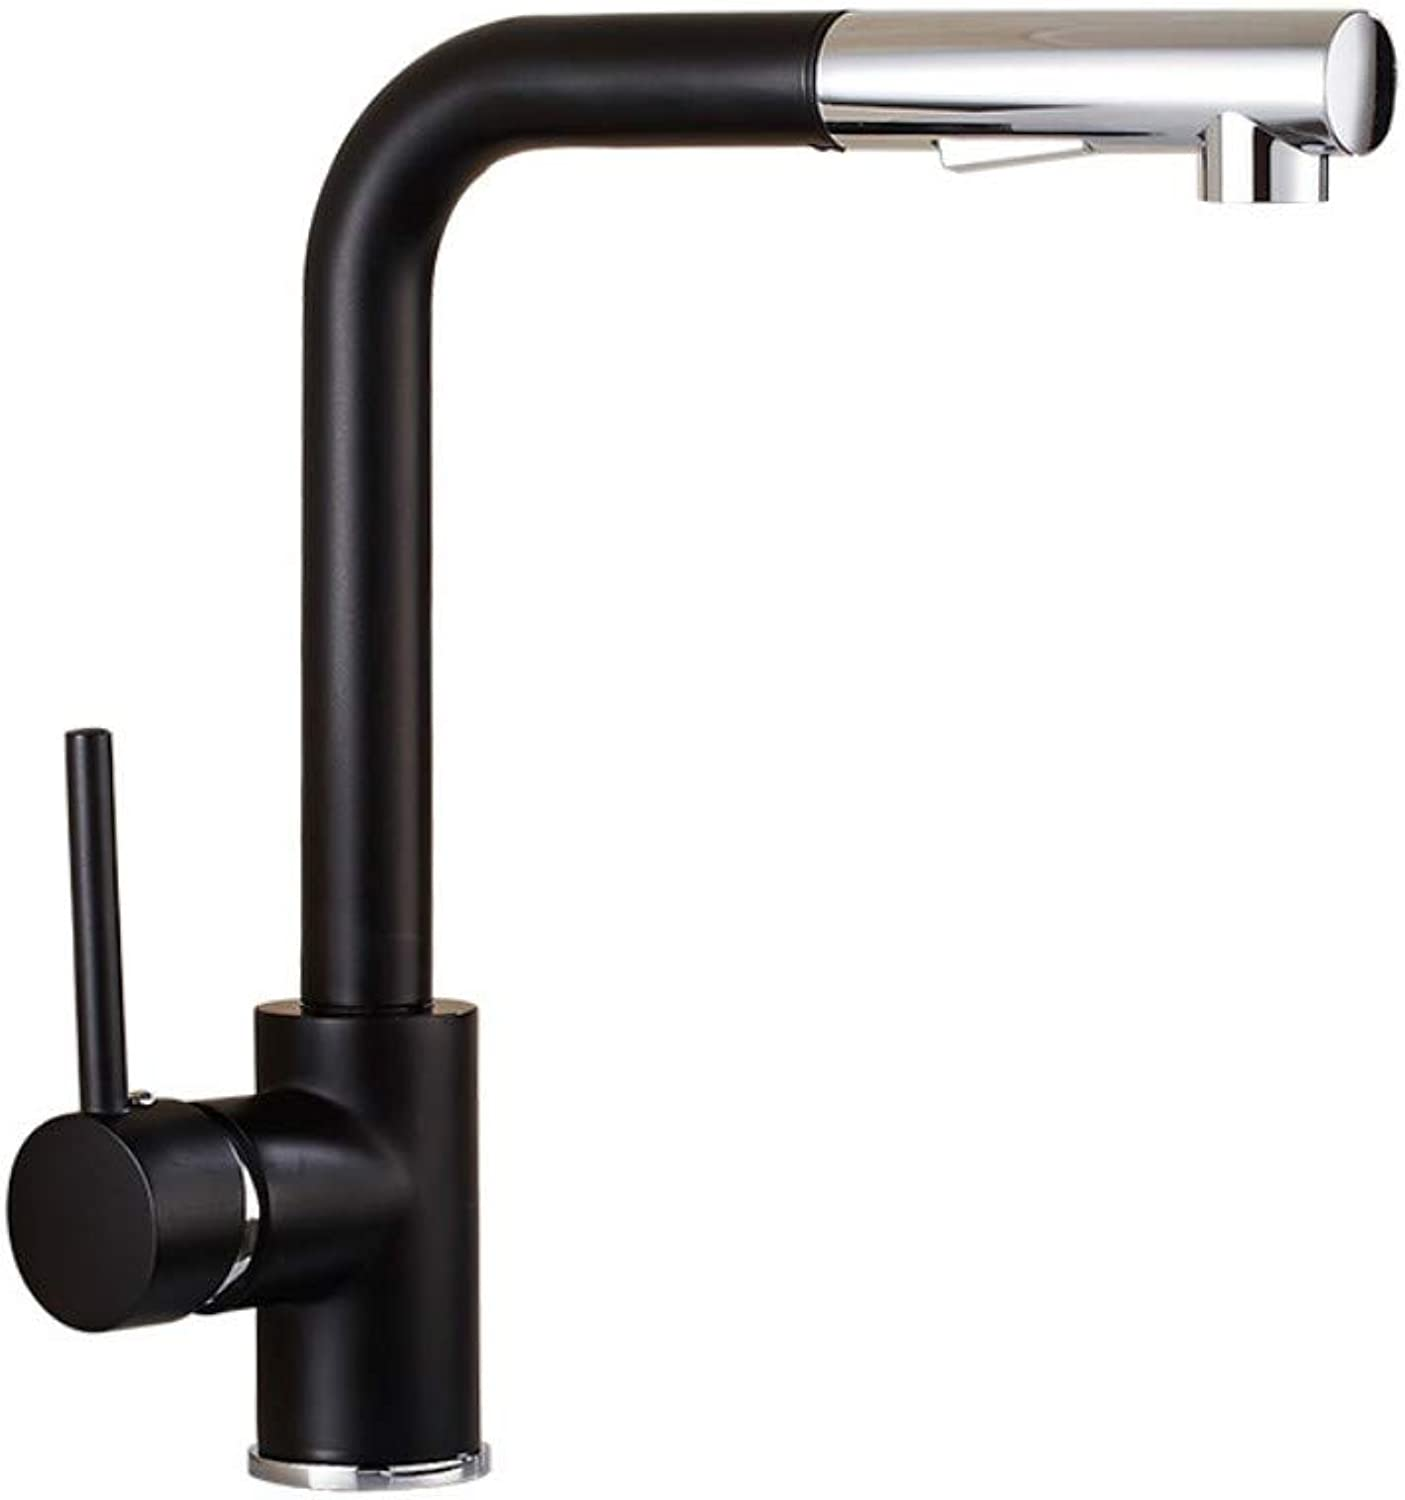 Kitchen Pull-Type Faucet Sink Sink Hot and Cold redating Black Faucet